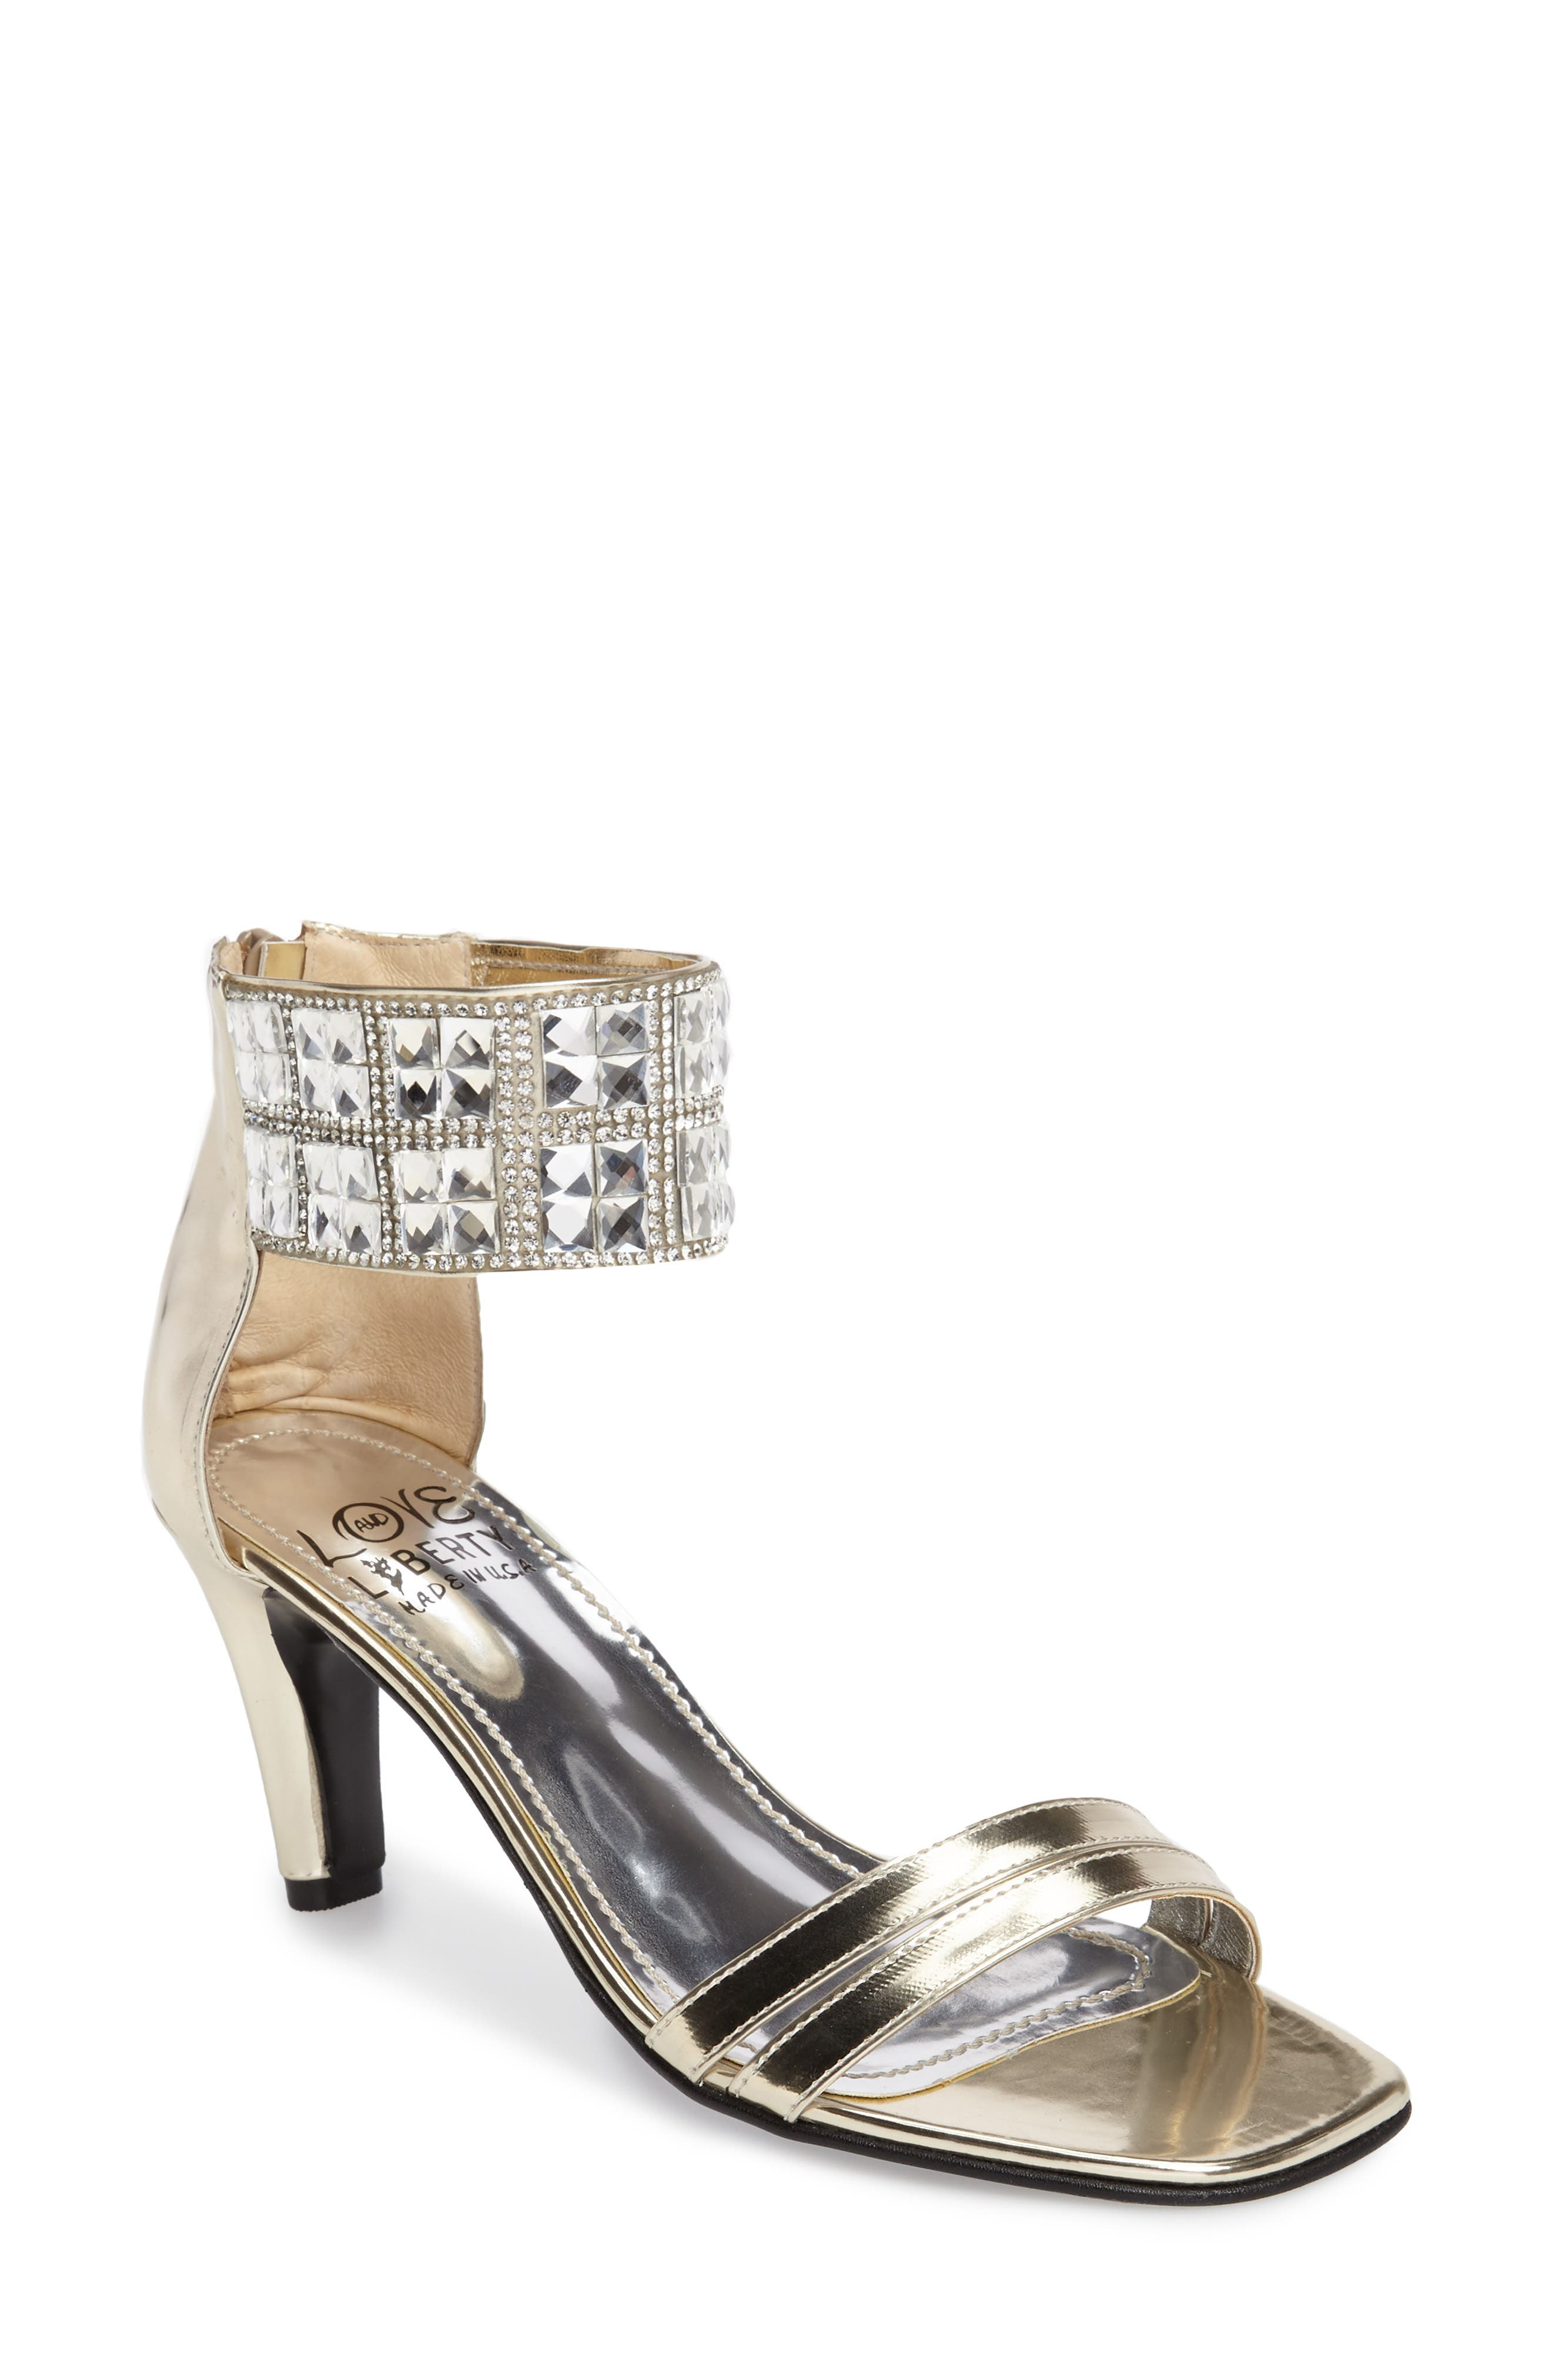 LOVE AND LIBERTY, Scarlett Crystal Embellished Evening Sandal, Main thumbnail 1, color, PLATINUM FAUX LEATHER